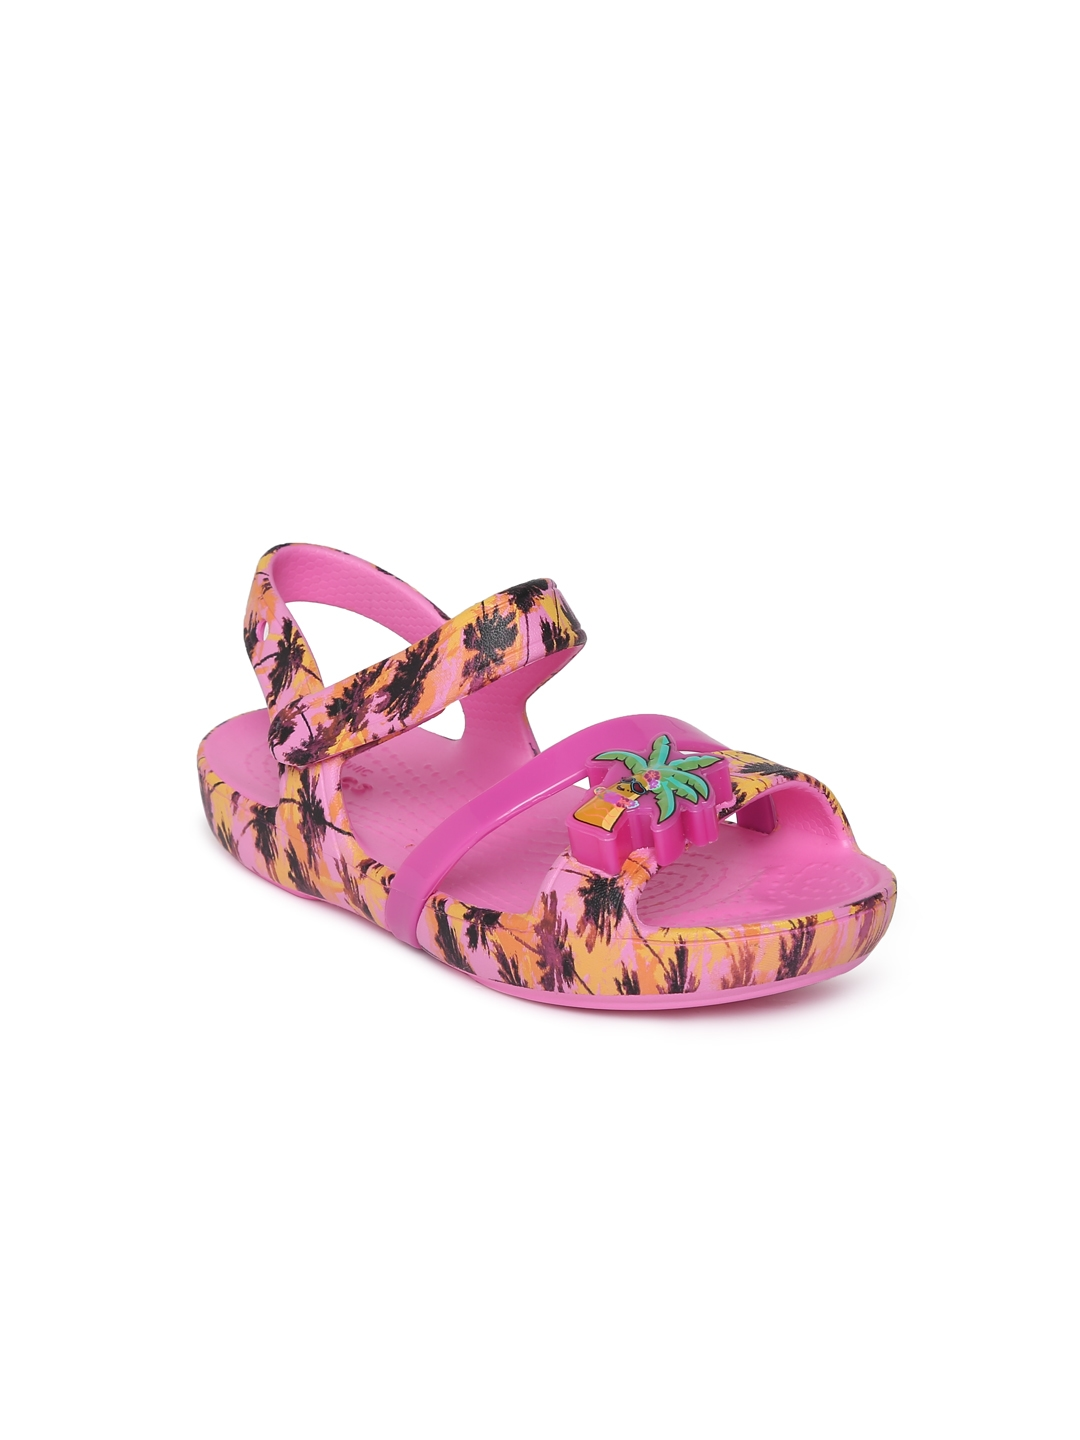 40864d70a19753 Buy Crocs Girls Pink Printed Comfort Sandals - Sandals for Girls ...